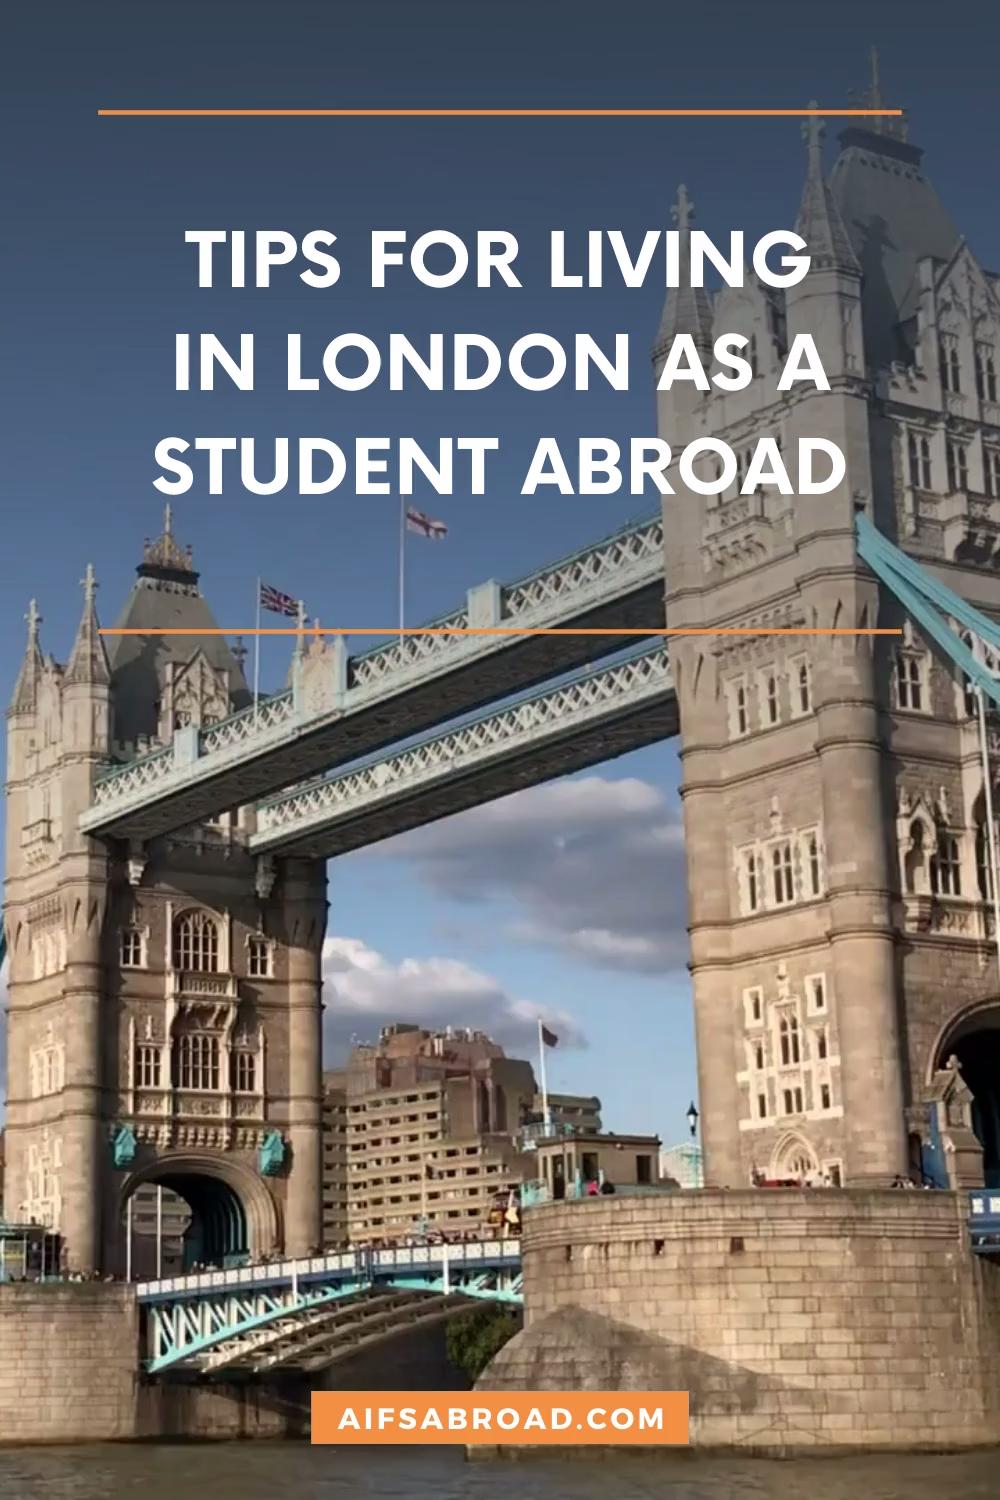 Want to study abroad in London? Emma Sophie from the College of William and Mary gives some great tips on living in England's capital city during the summer as a college student studying abroad. #aifsabroad #studyabroad #london #england